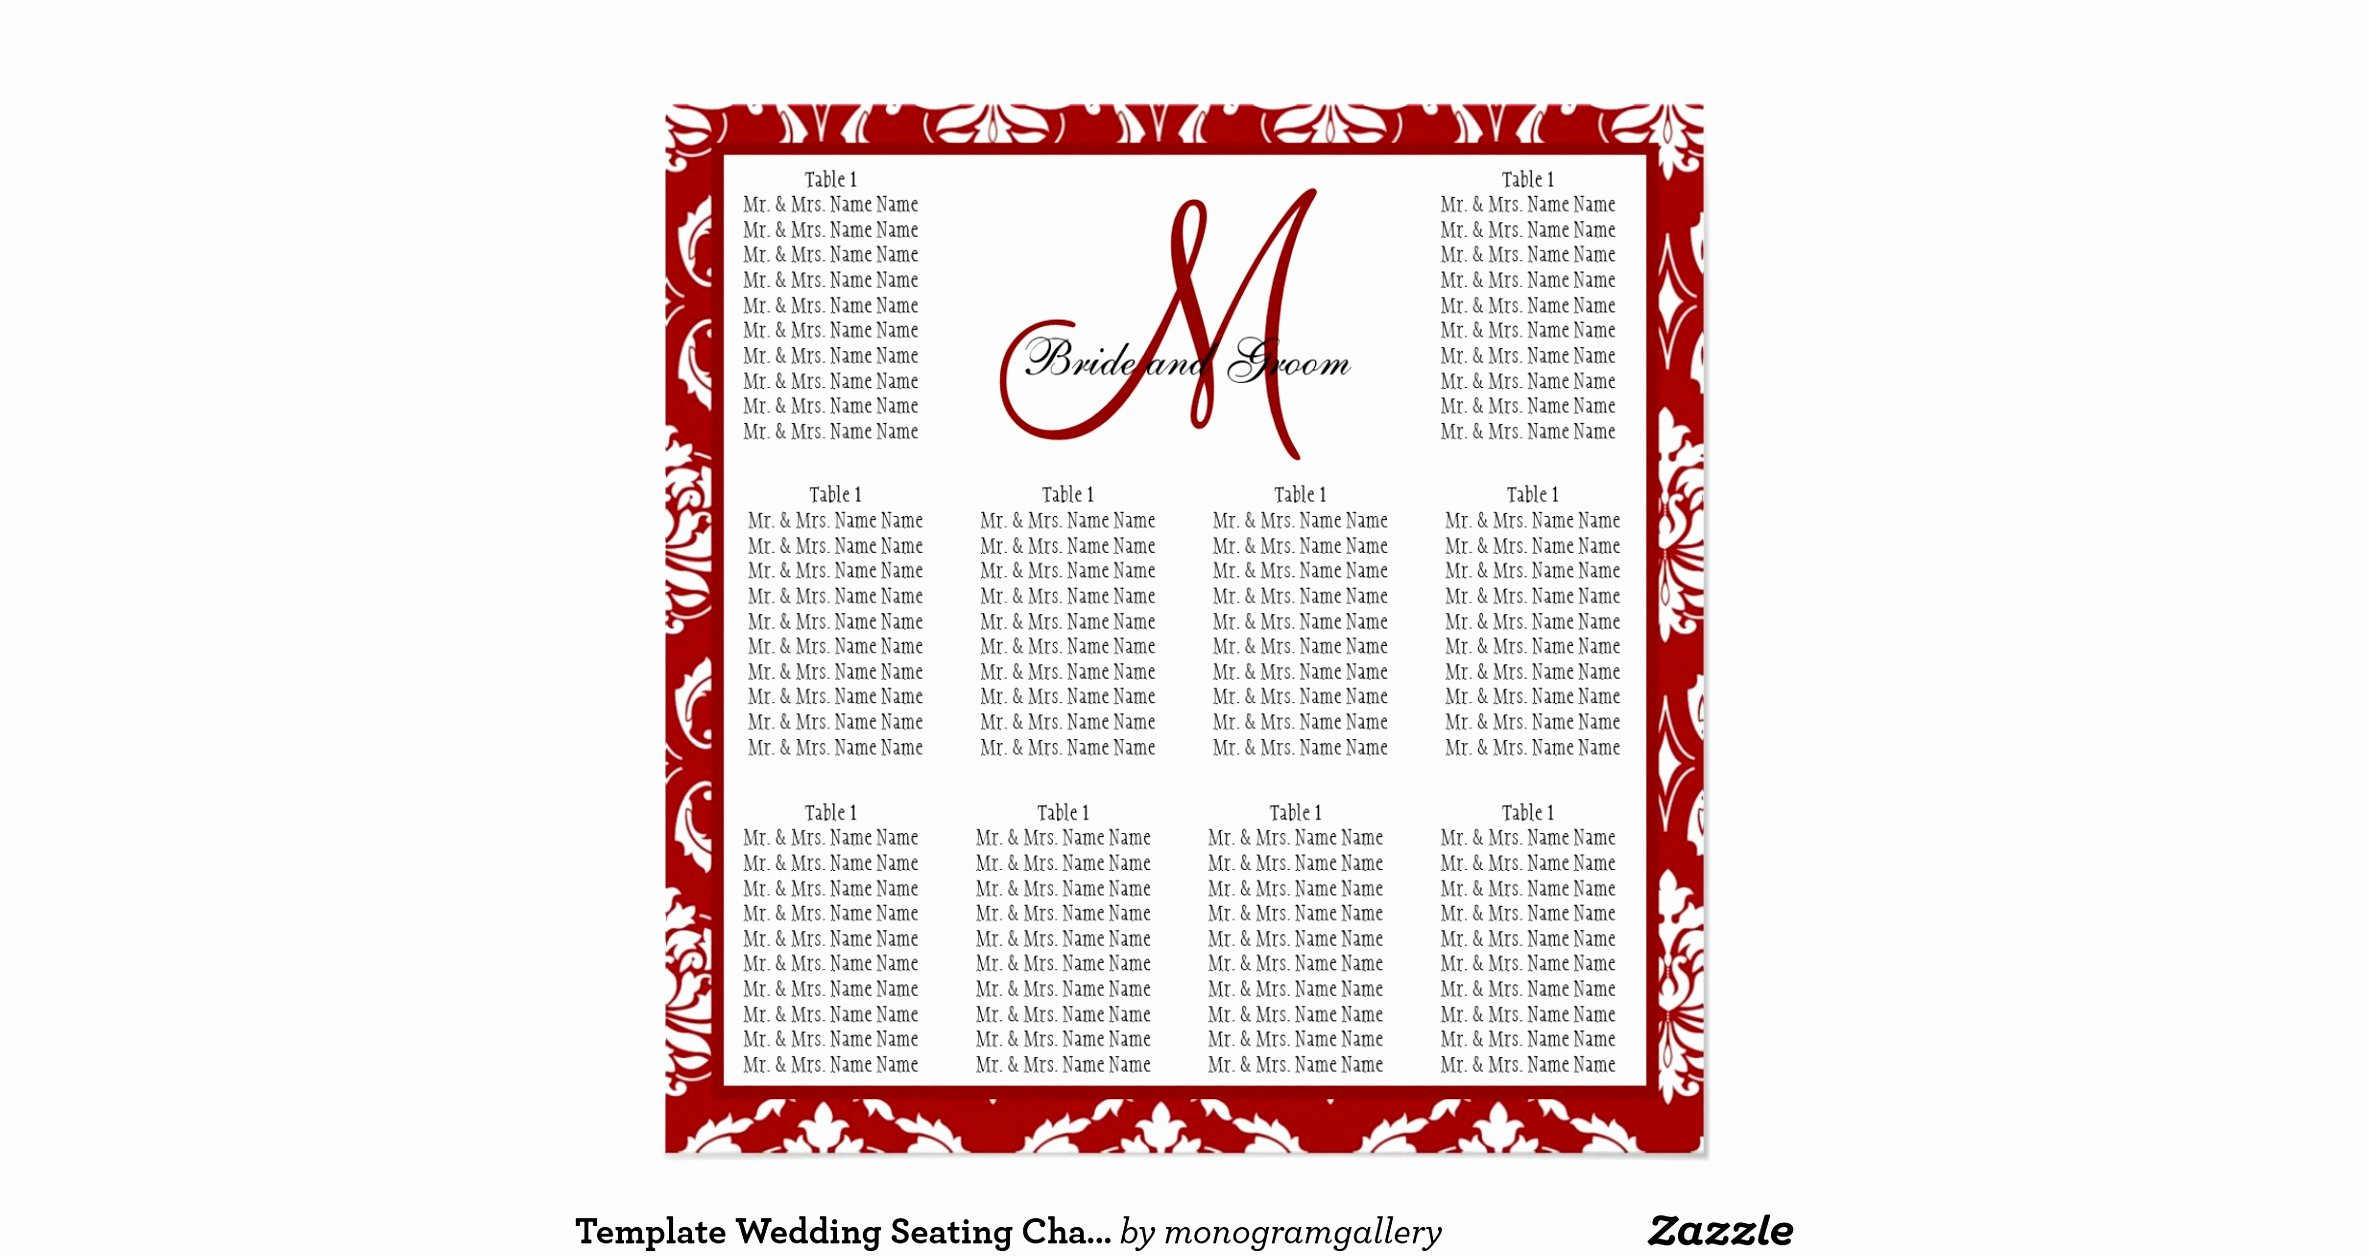 Church Seating Chart Template Unique Church Wedding Seating Plan Template